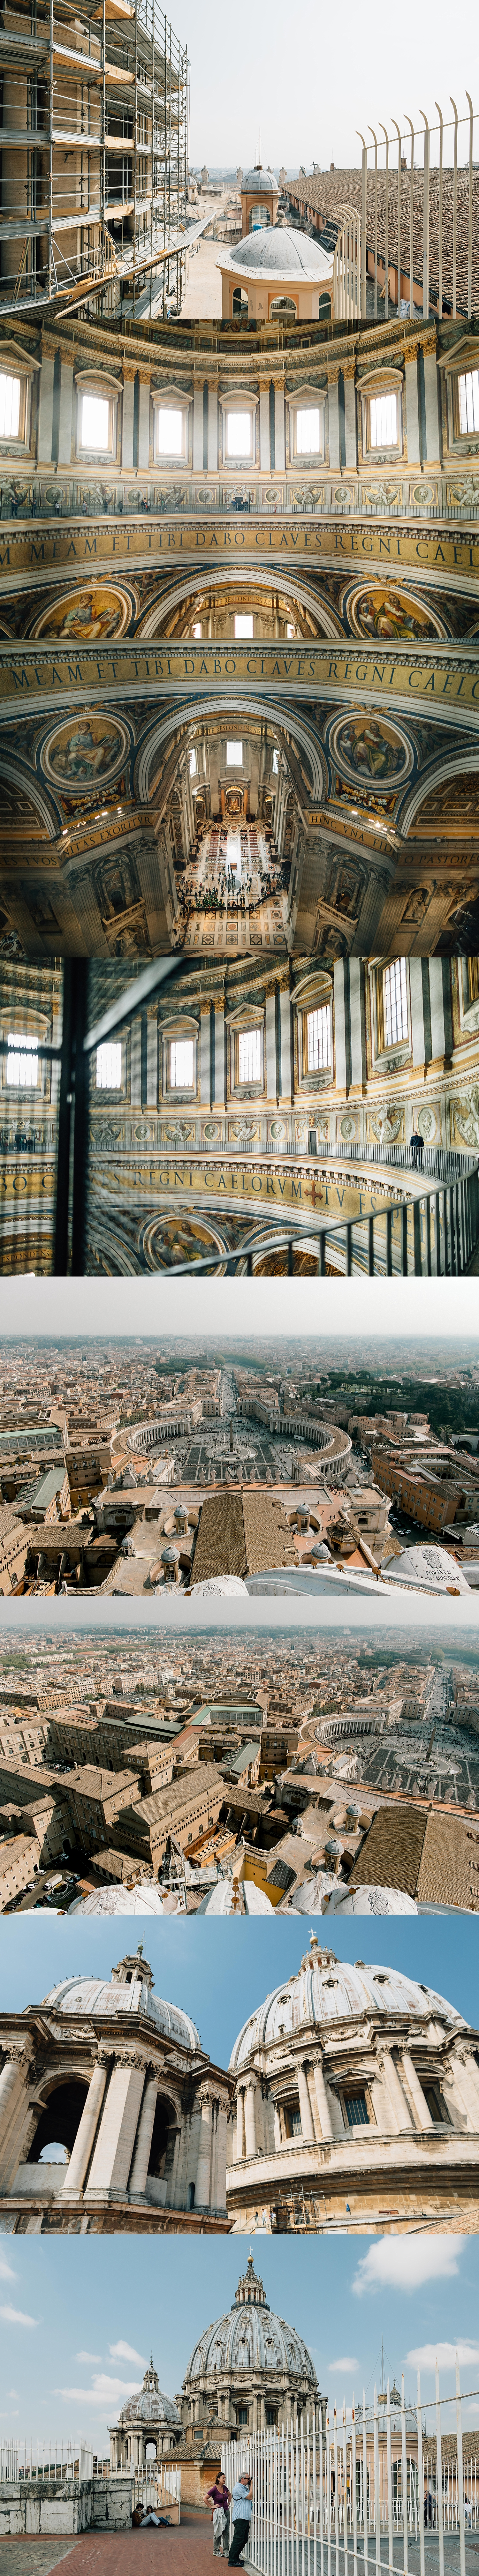 St. Peter's Basilica's dome.